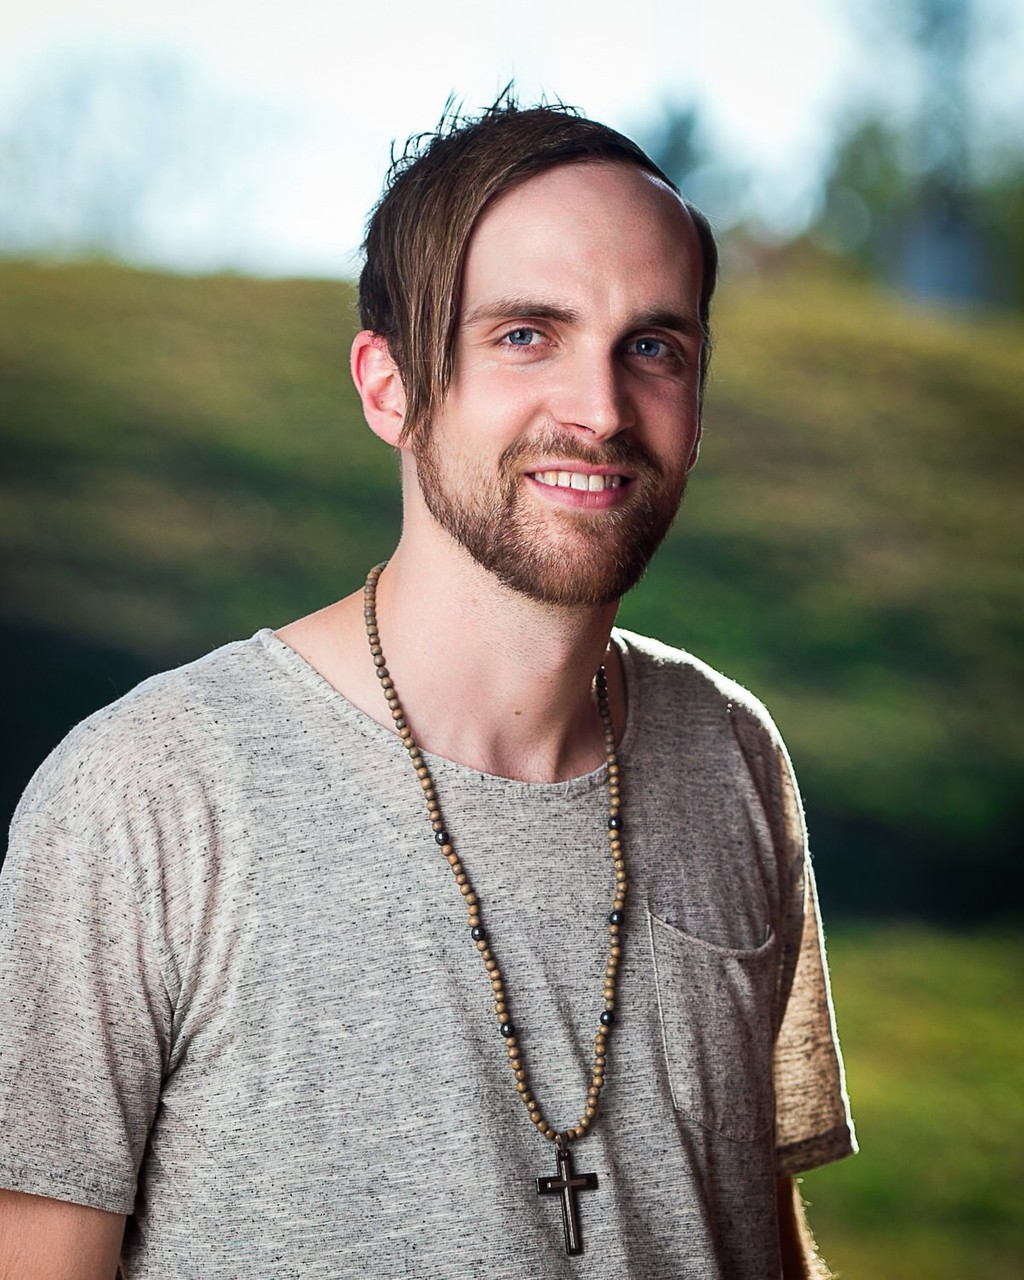 Knoxville Musician Headshot Photo